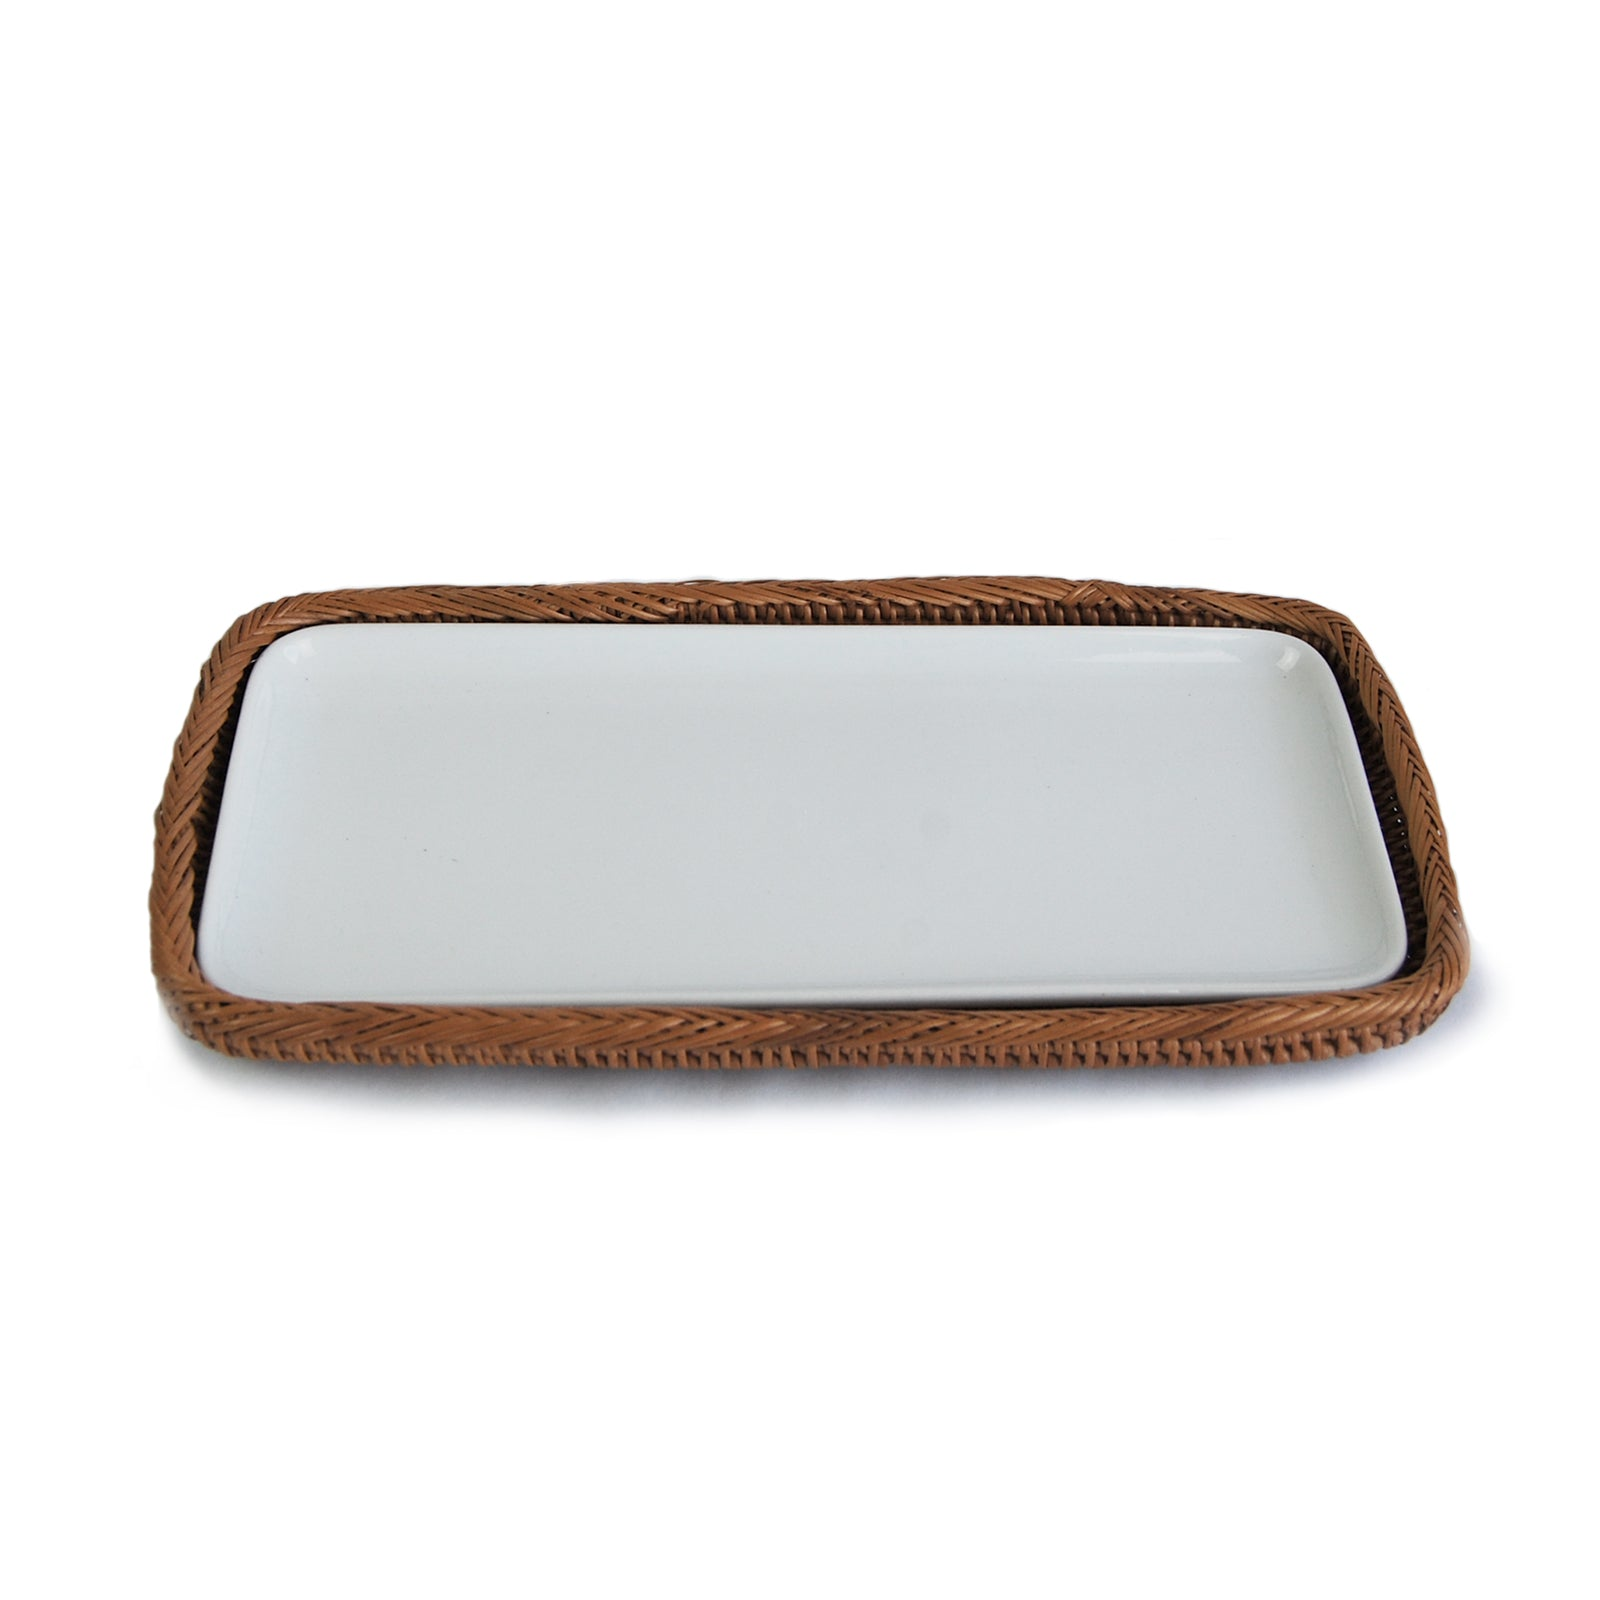 Bali Amenity Tray w/ Porcelain Liner